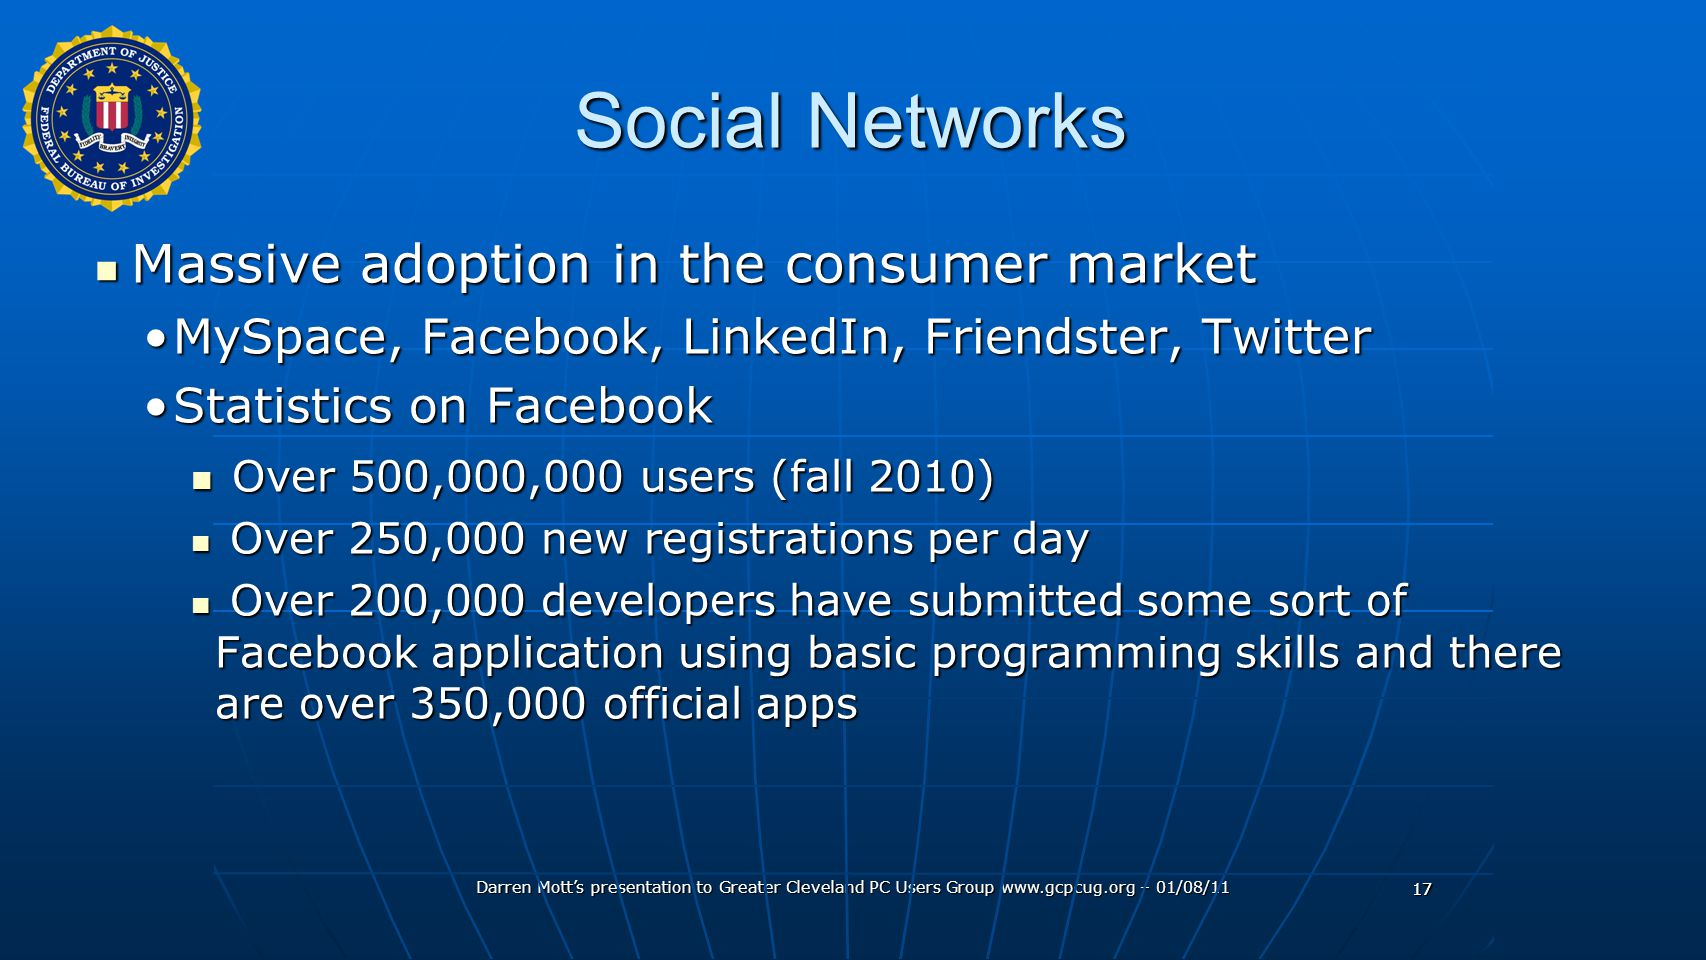 Darren Mott's presentation to Greater Cleveland PC Users Group www.gcpcug.org – 01/08/11 17 Social Networks Massive adoption in the consumer market Massive adoption in the consumer market MySpace, Facebook, LinkedIn, Friendster, TwitterMySpace, Facebook, LinkedIn, Friendster, Twitter Statistics on FacebookStatistics on Facebook Over 500,000,000 users (fall 2010) Over 500,000,000 users (fall 2010) Over 250,000 new registrations per day Over 250,000 new registrations per day Over 200,000 developers have submitted some sort of Facebook application using basic programming skills and there are over 350,000 official apps Over 200,000 developers have submitted some sort of Facebook application using basic programming skills and there are over 350,000 official apps 17